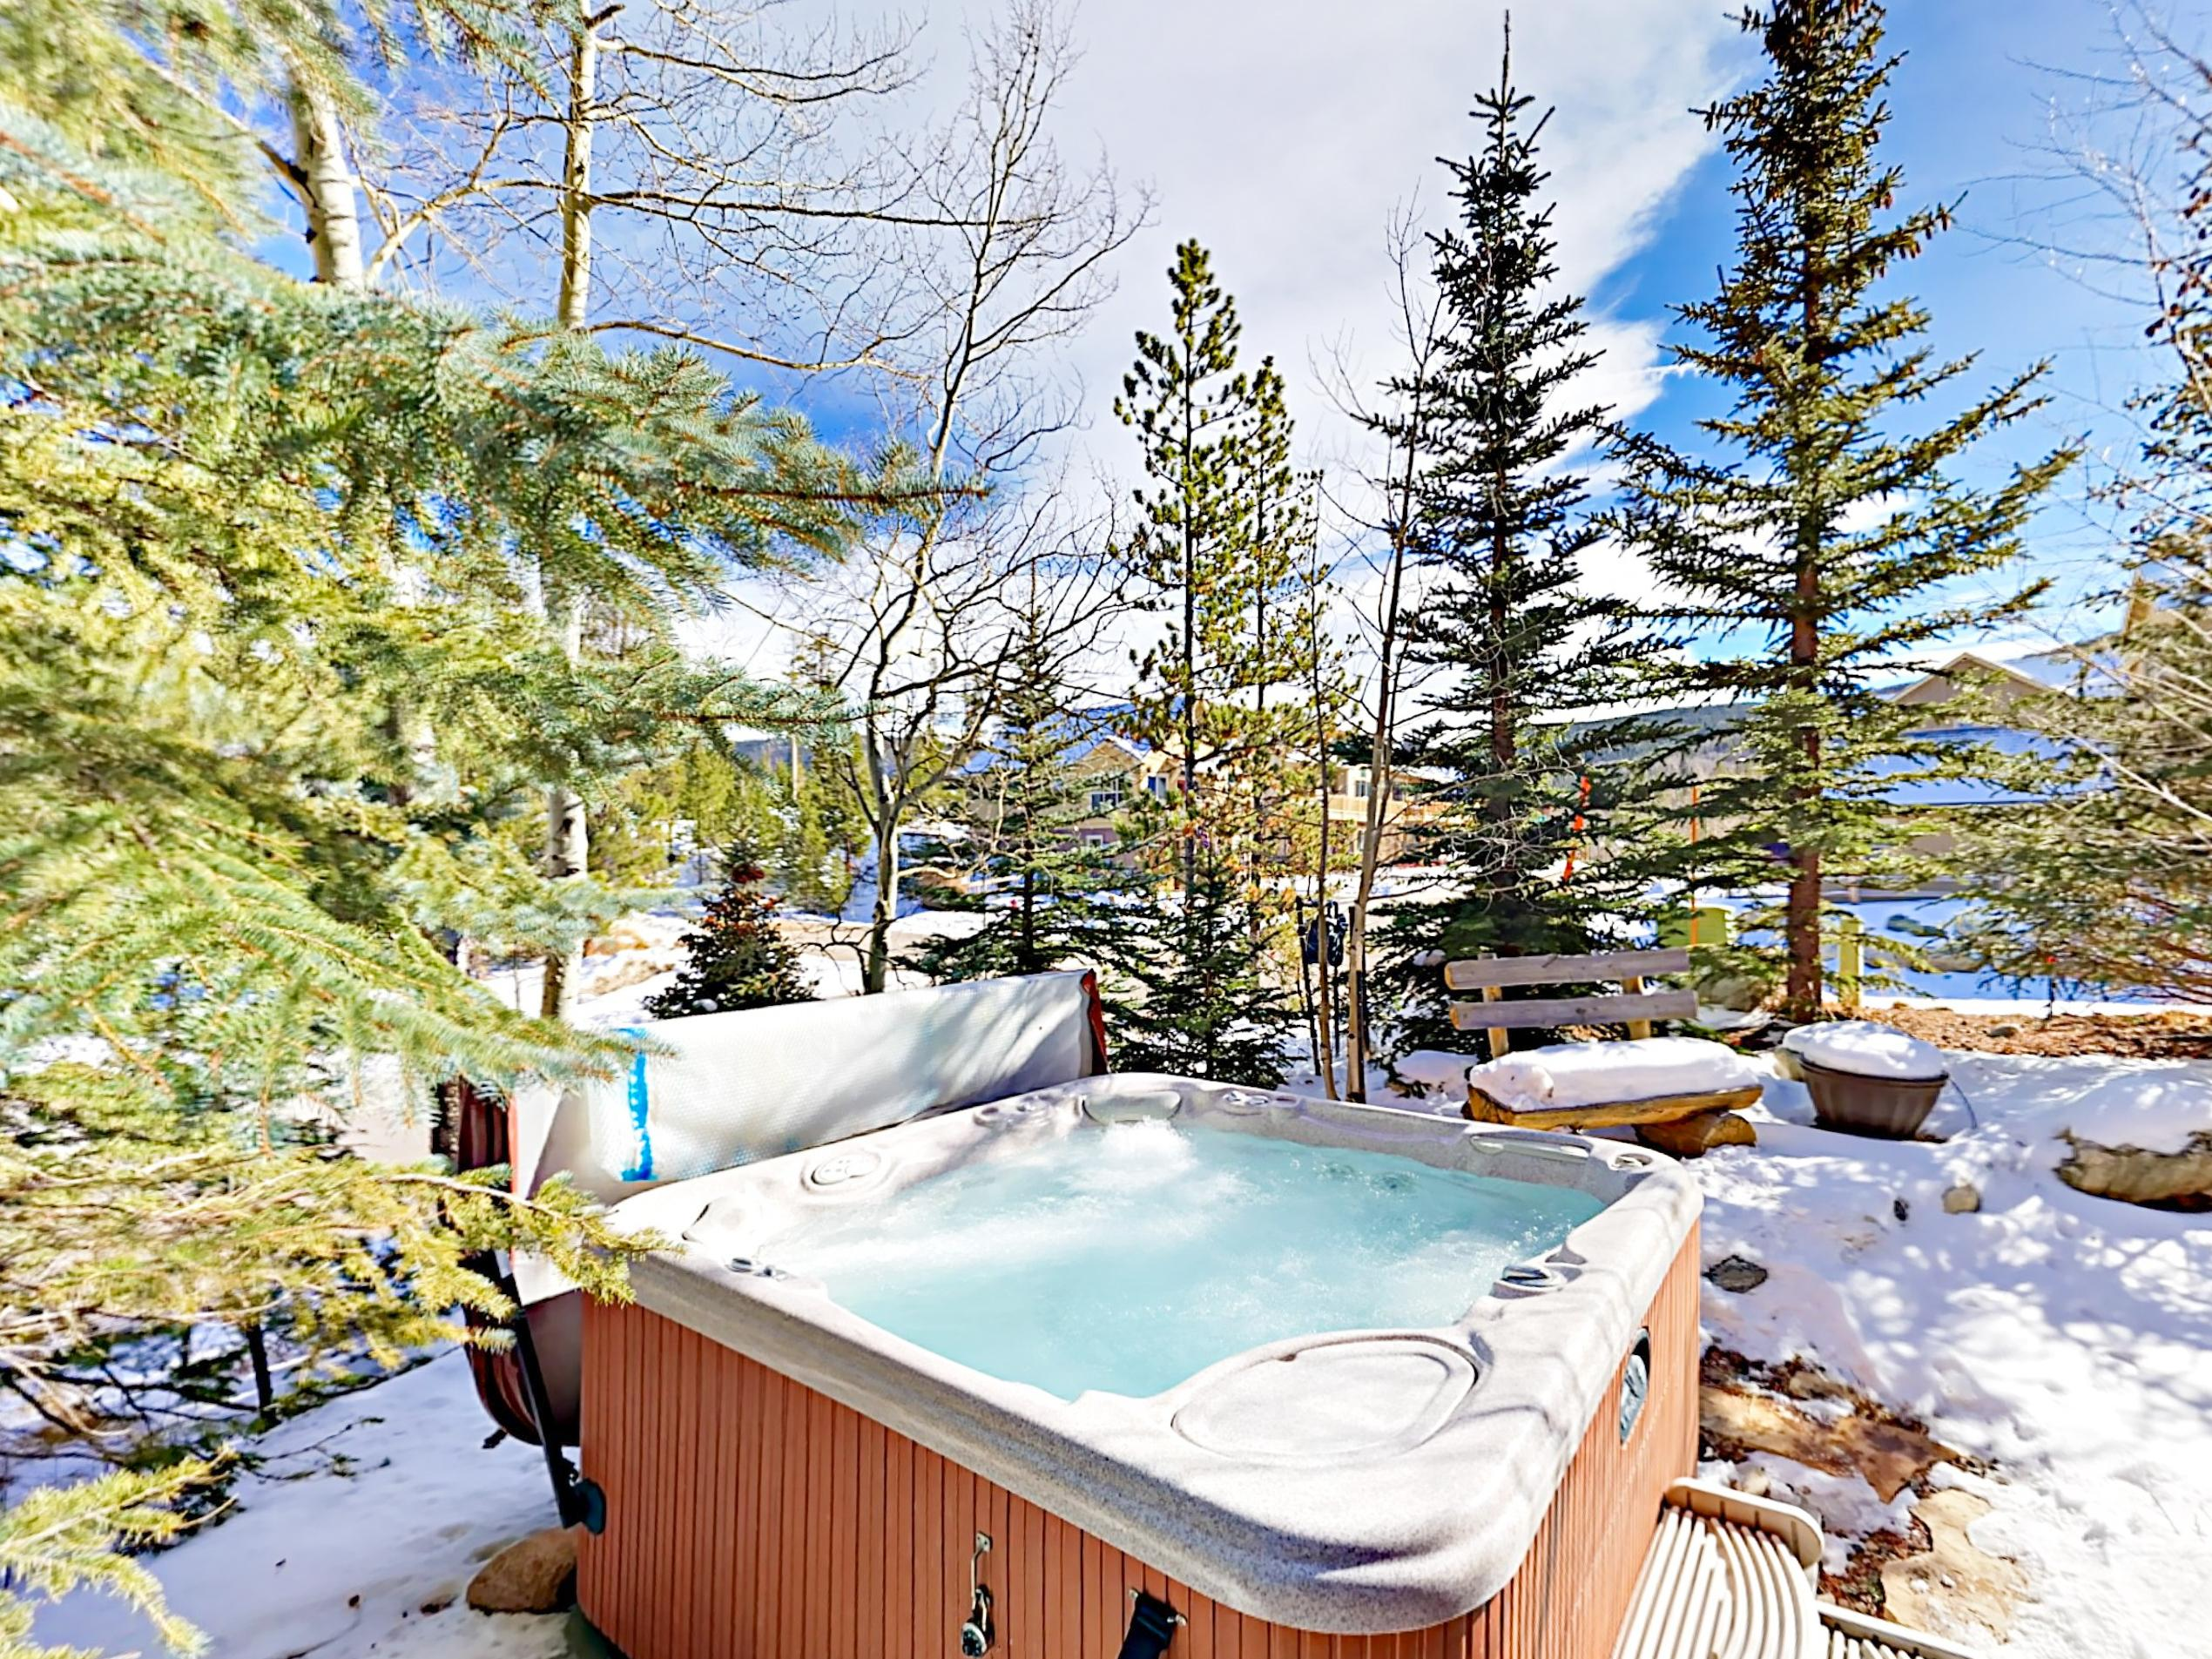 Enjoy a rejuvenating soak in the private hot tub after a day on the slopes.